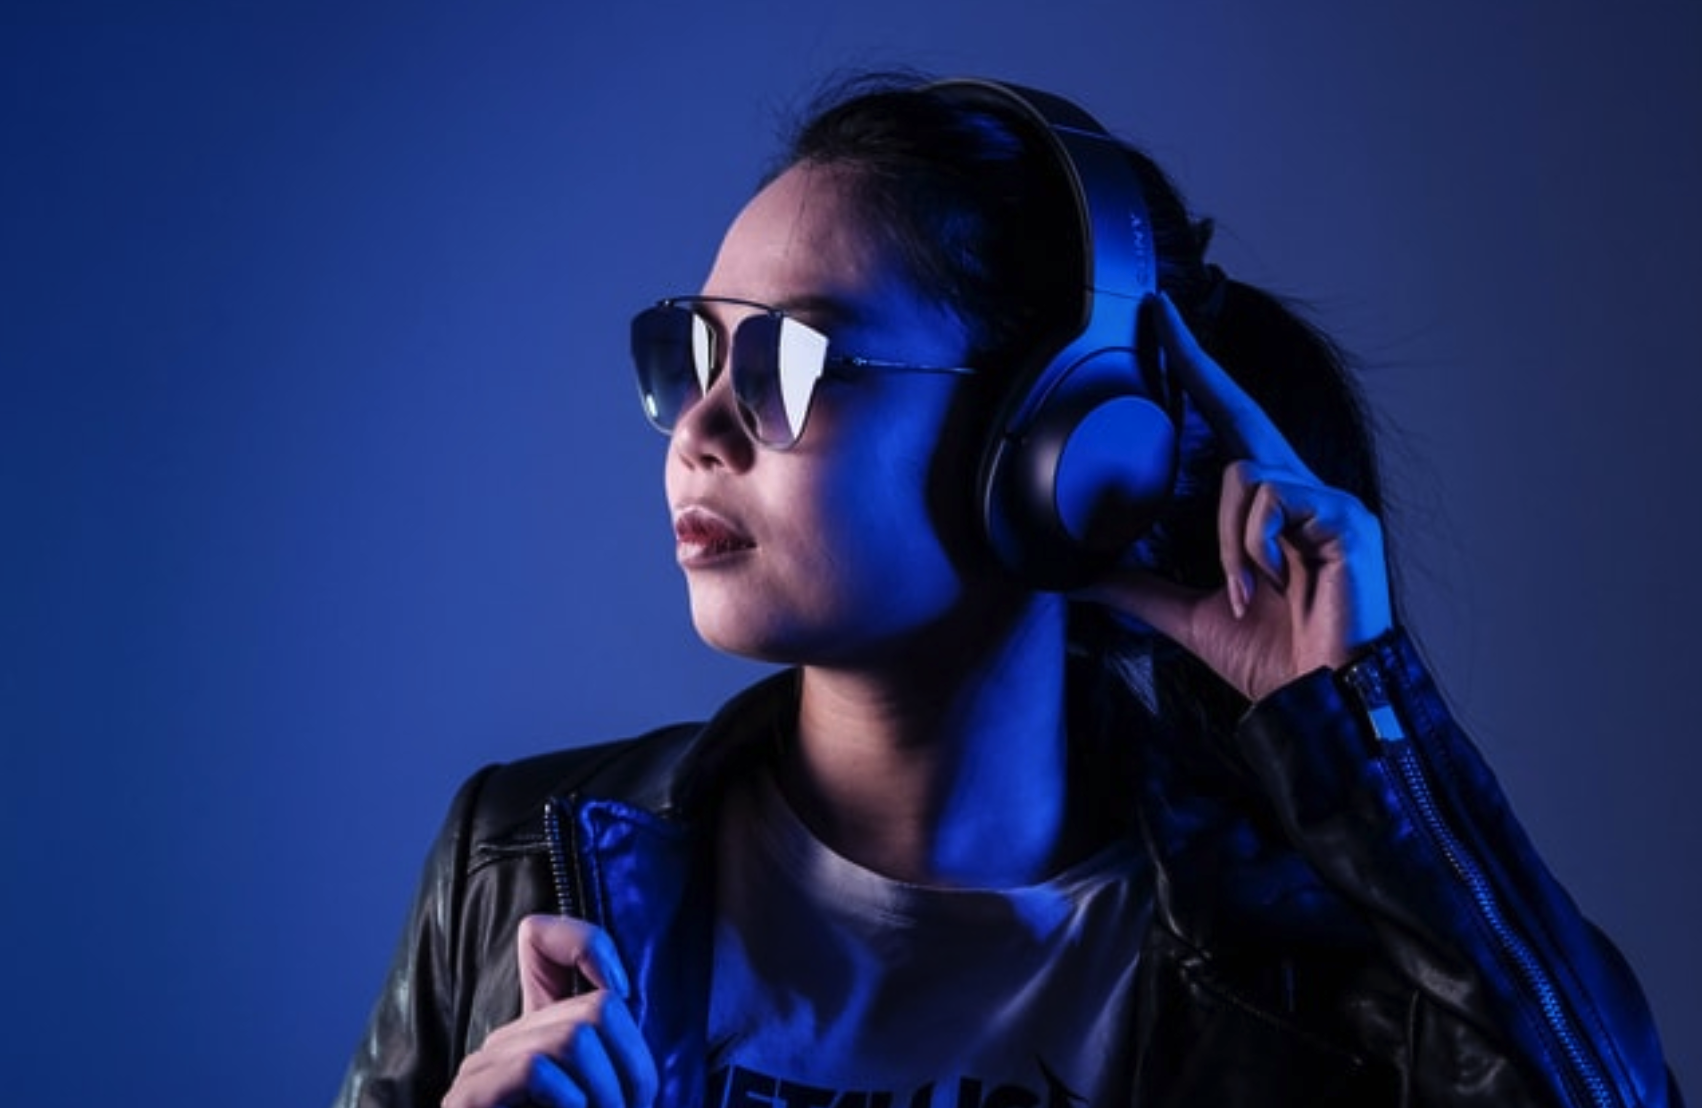 Listening Habits of Chinese Music Fans